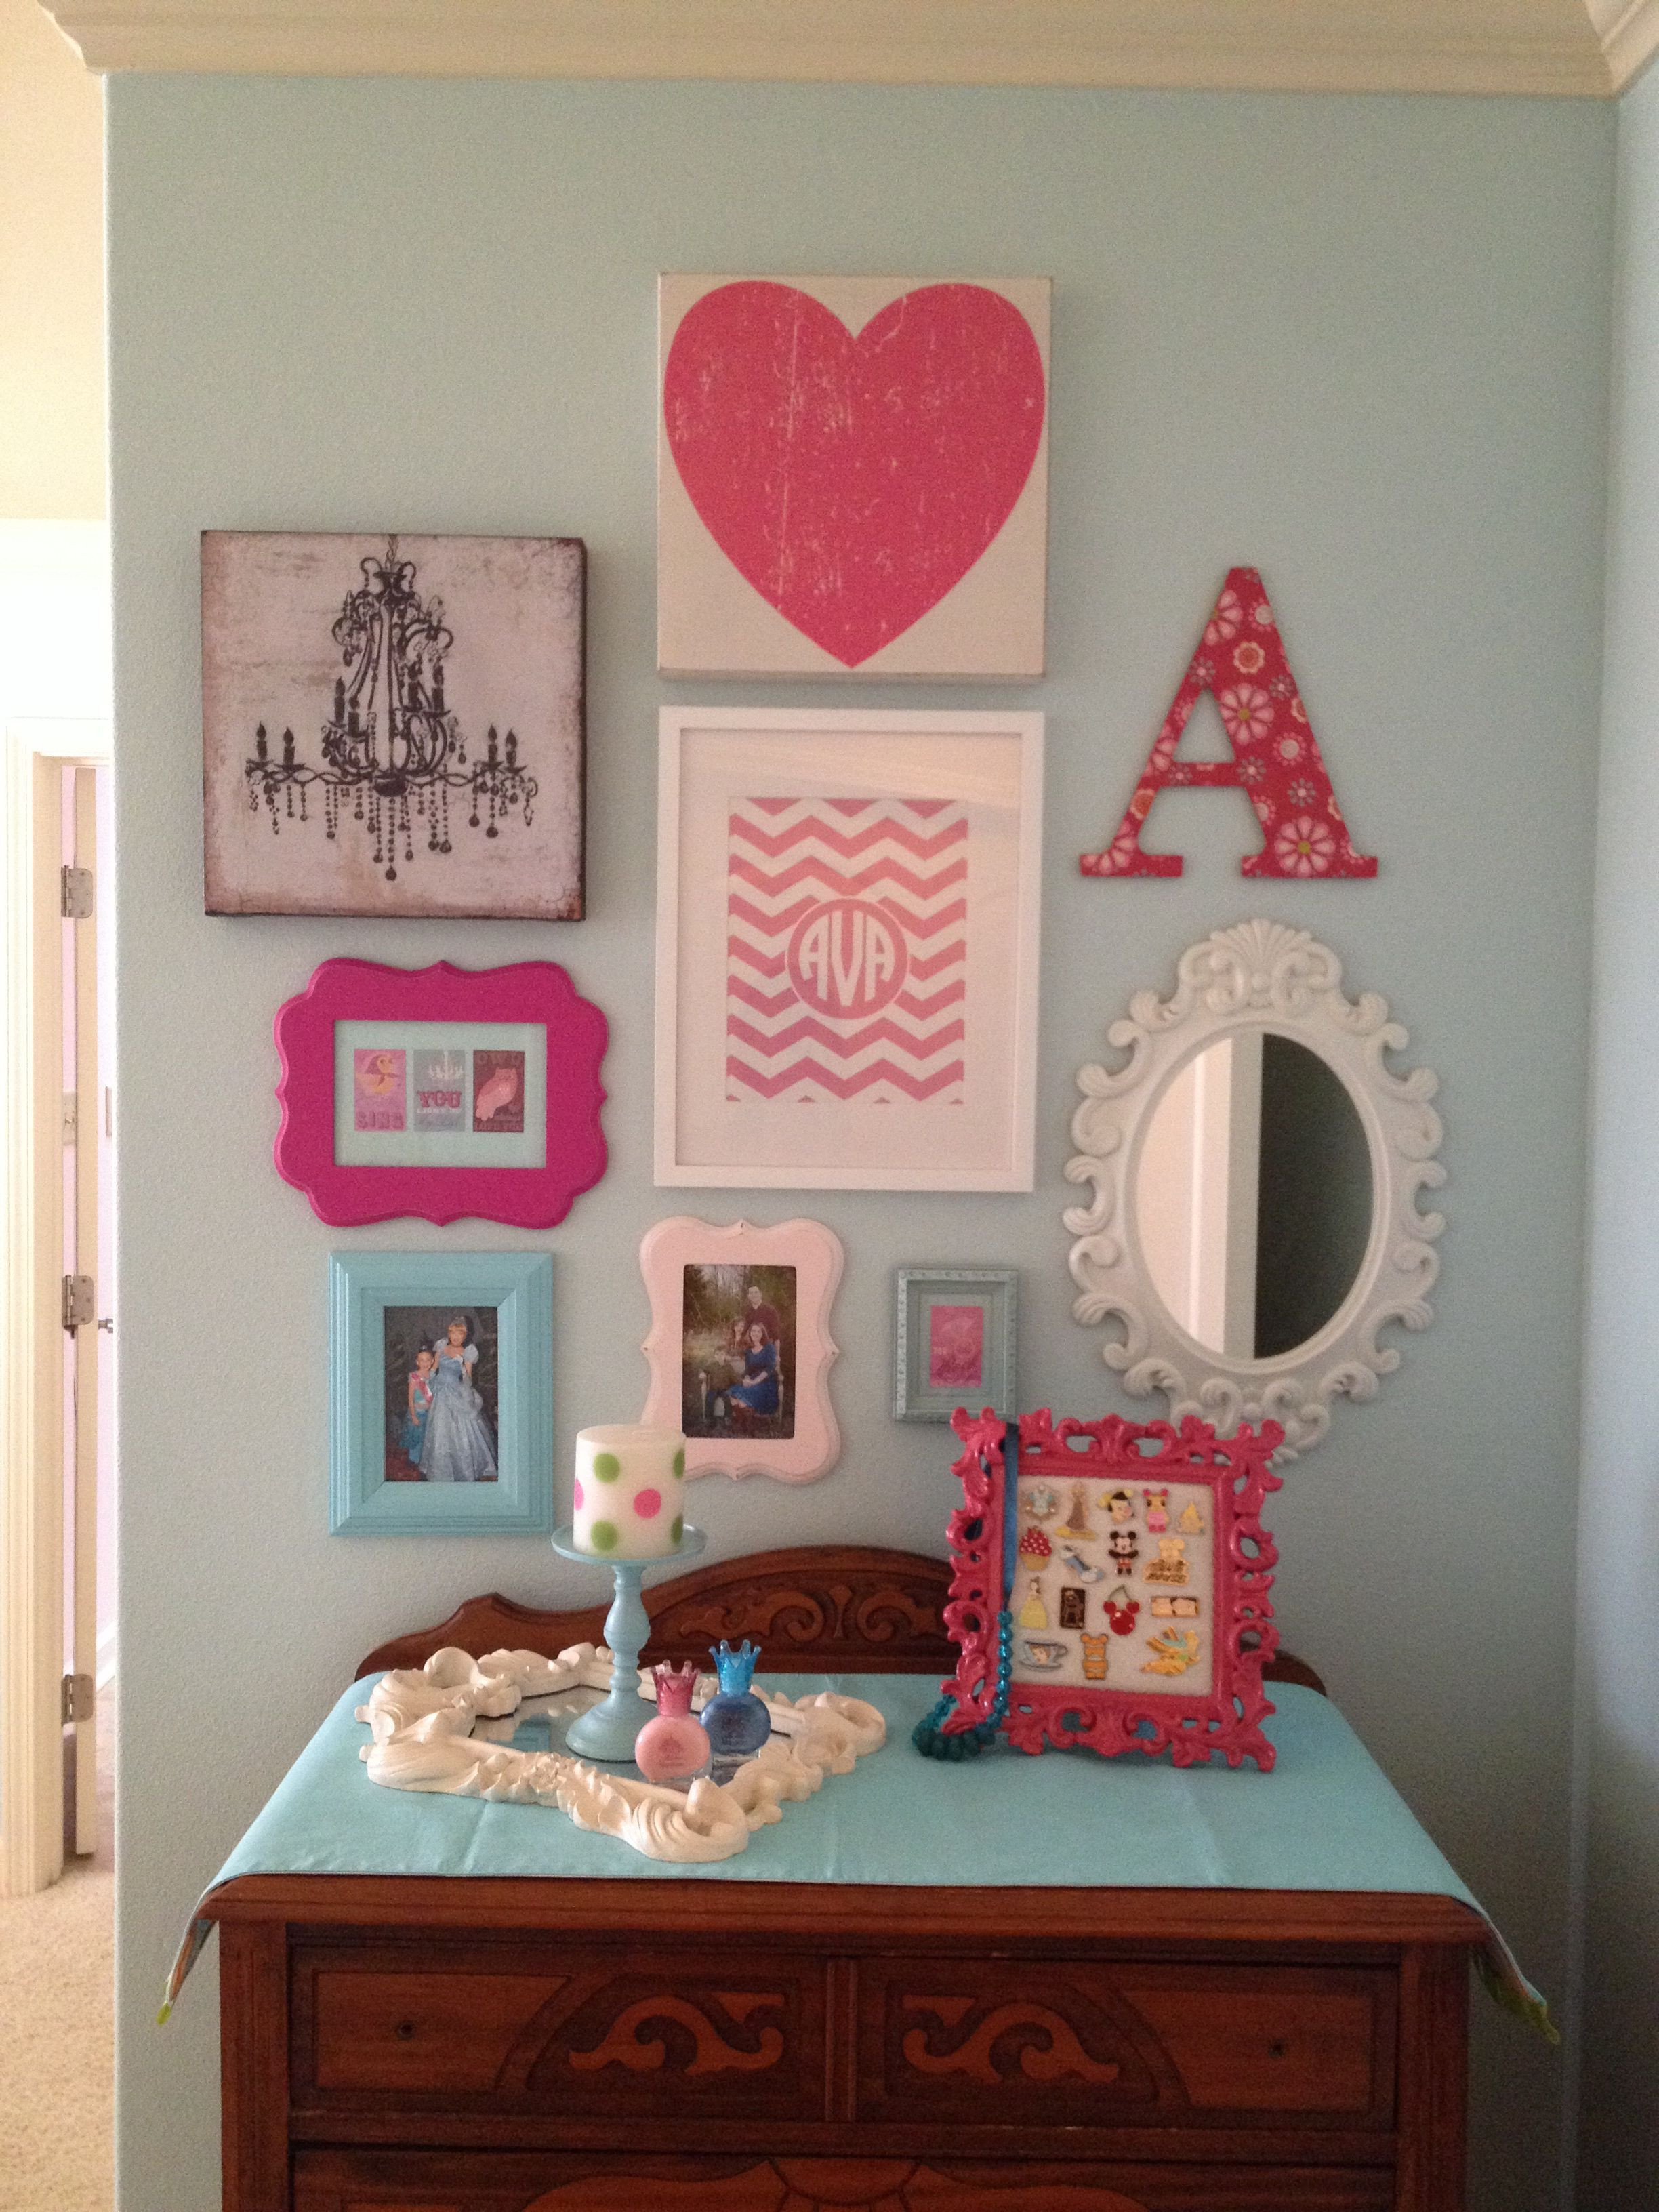 Wall Decoration for Girls Bedroom Inspirational Girls Room Gallery Wall